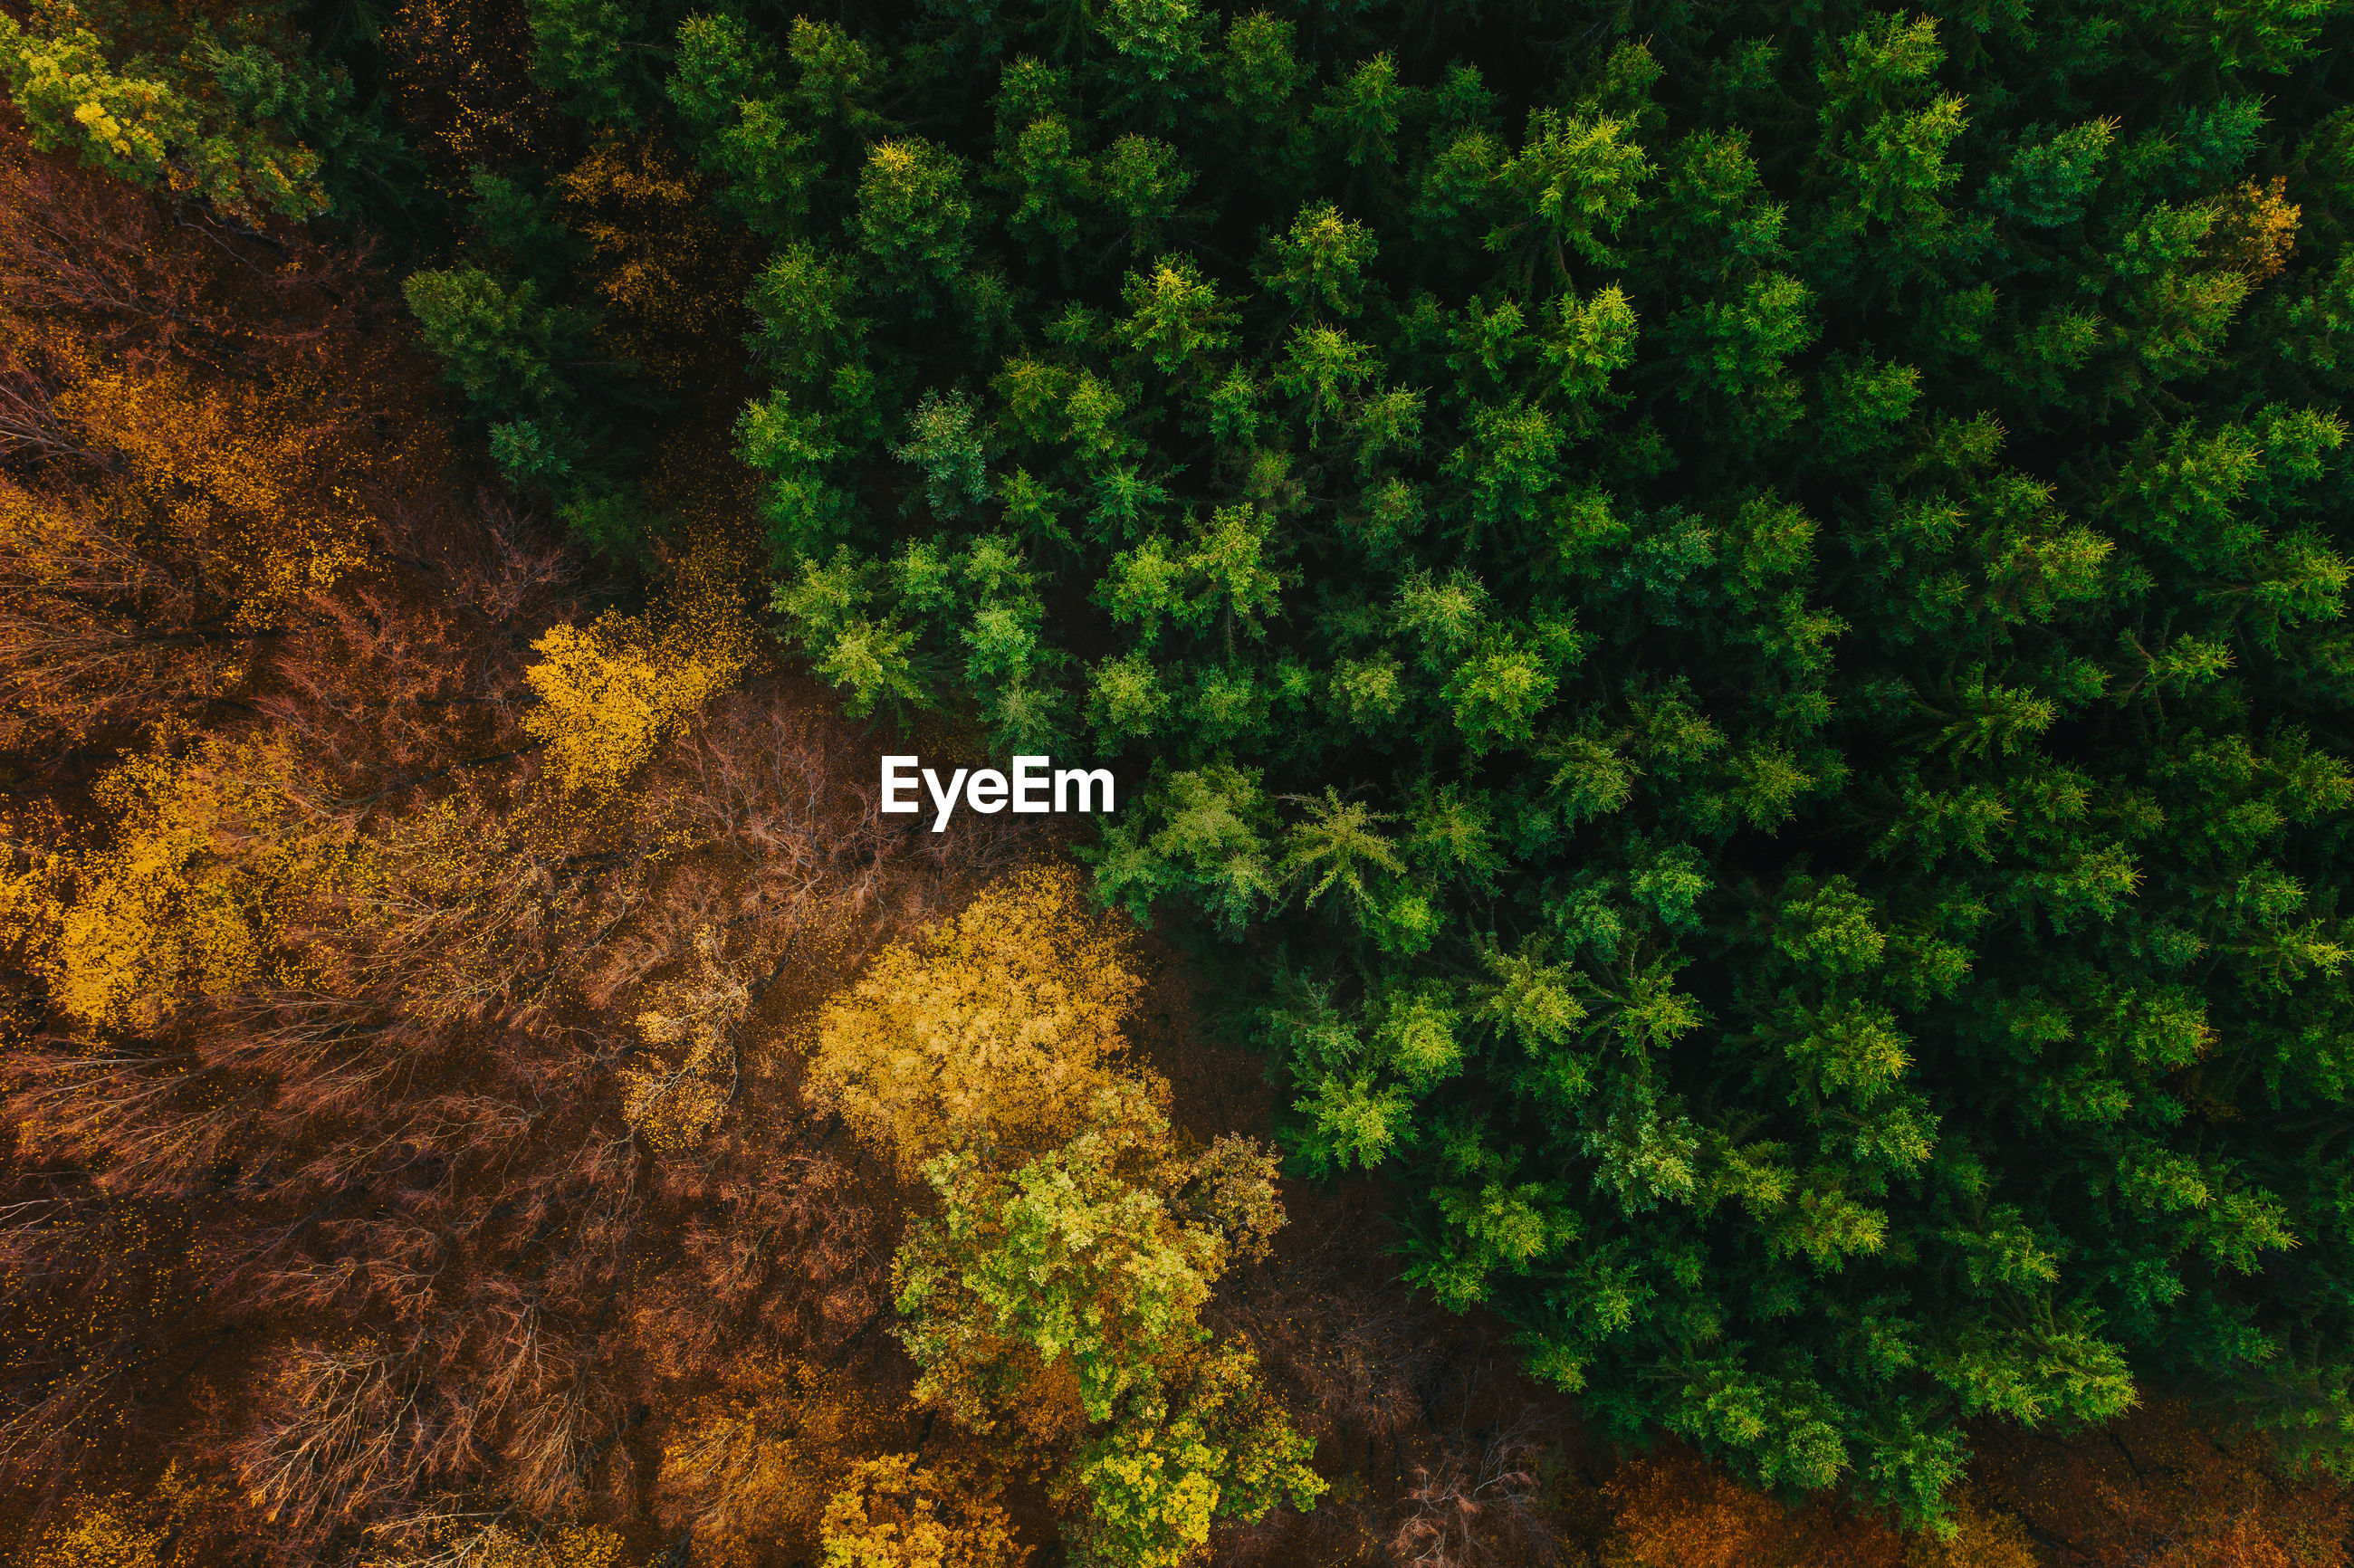 Aerial view of trees growing in forest during autumn